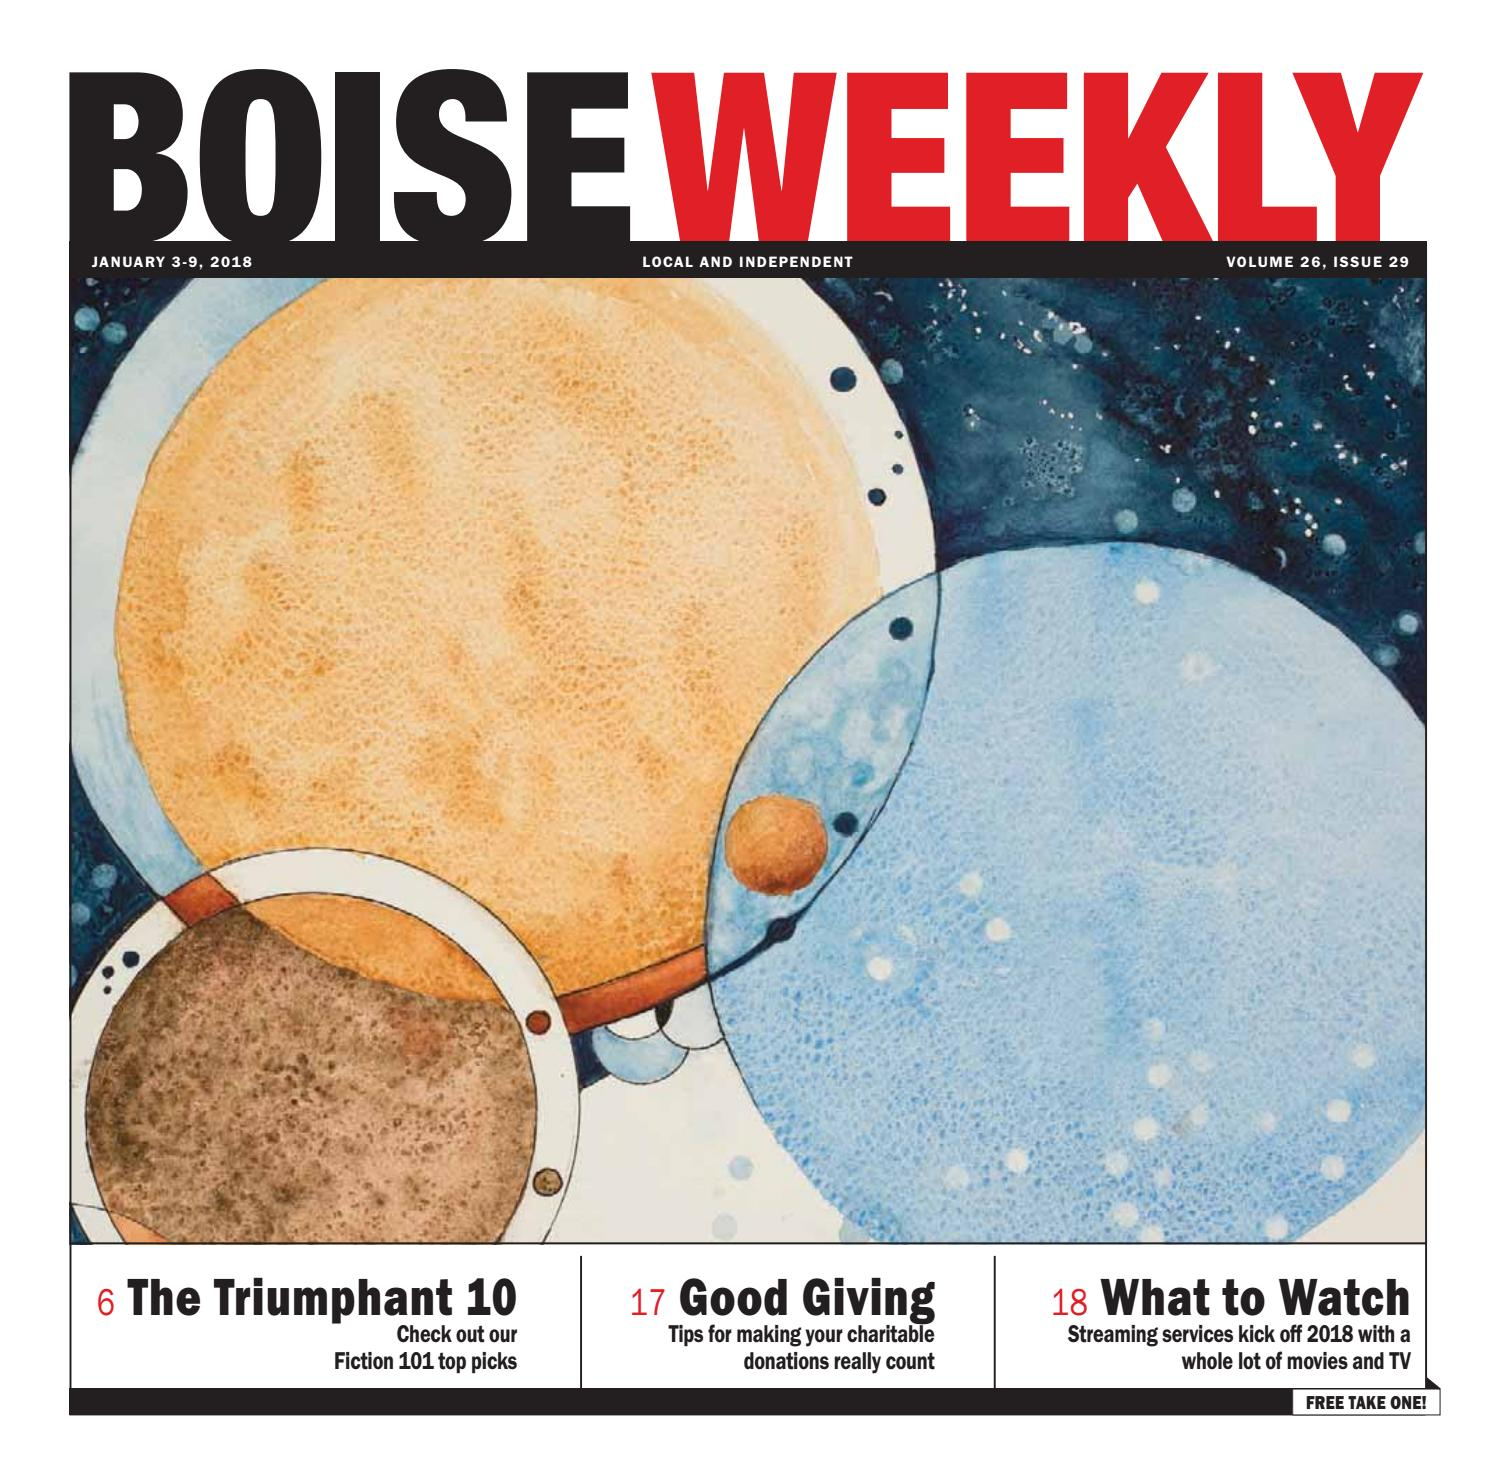 Boise Weekly Vol 26 Issue 29 By Boise Weekly Issuu Add your answer to the crossword database now. boise weekly vol 26 issue 29 by boise